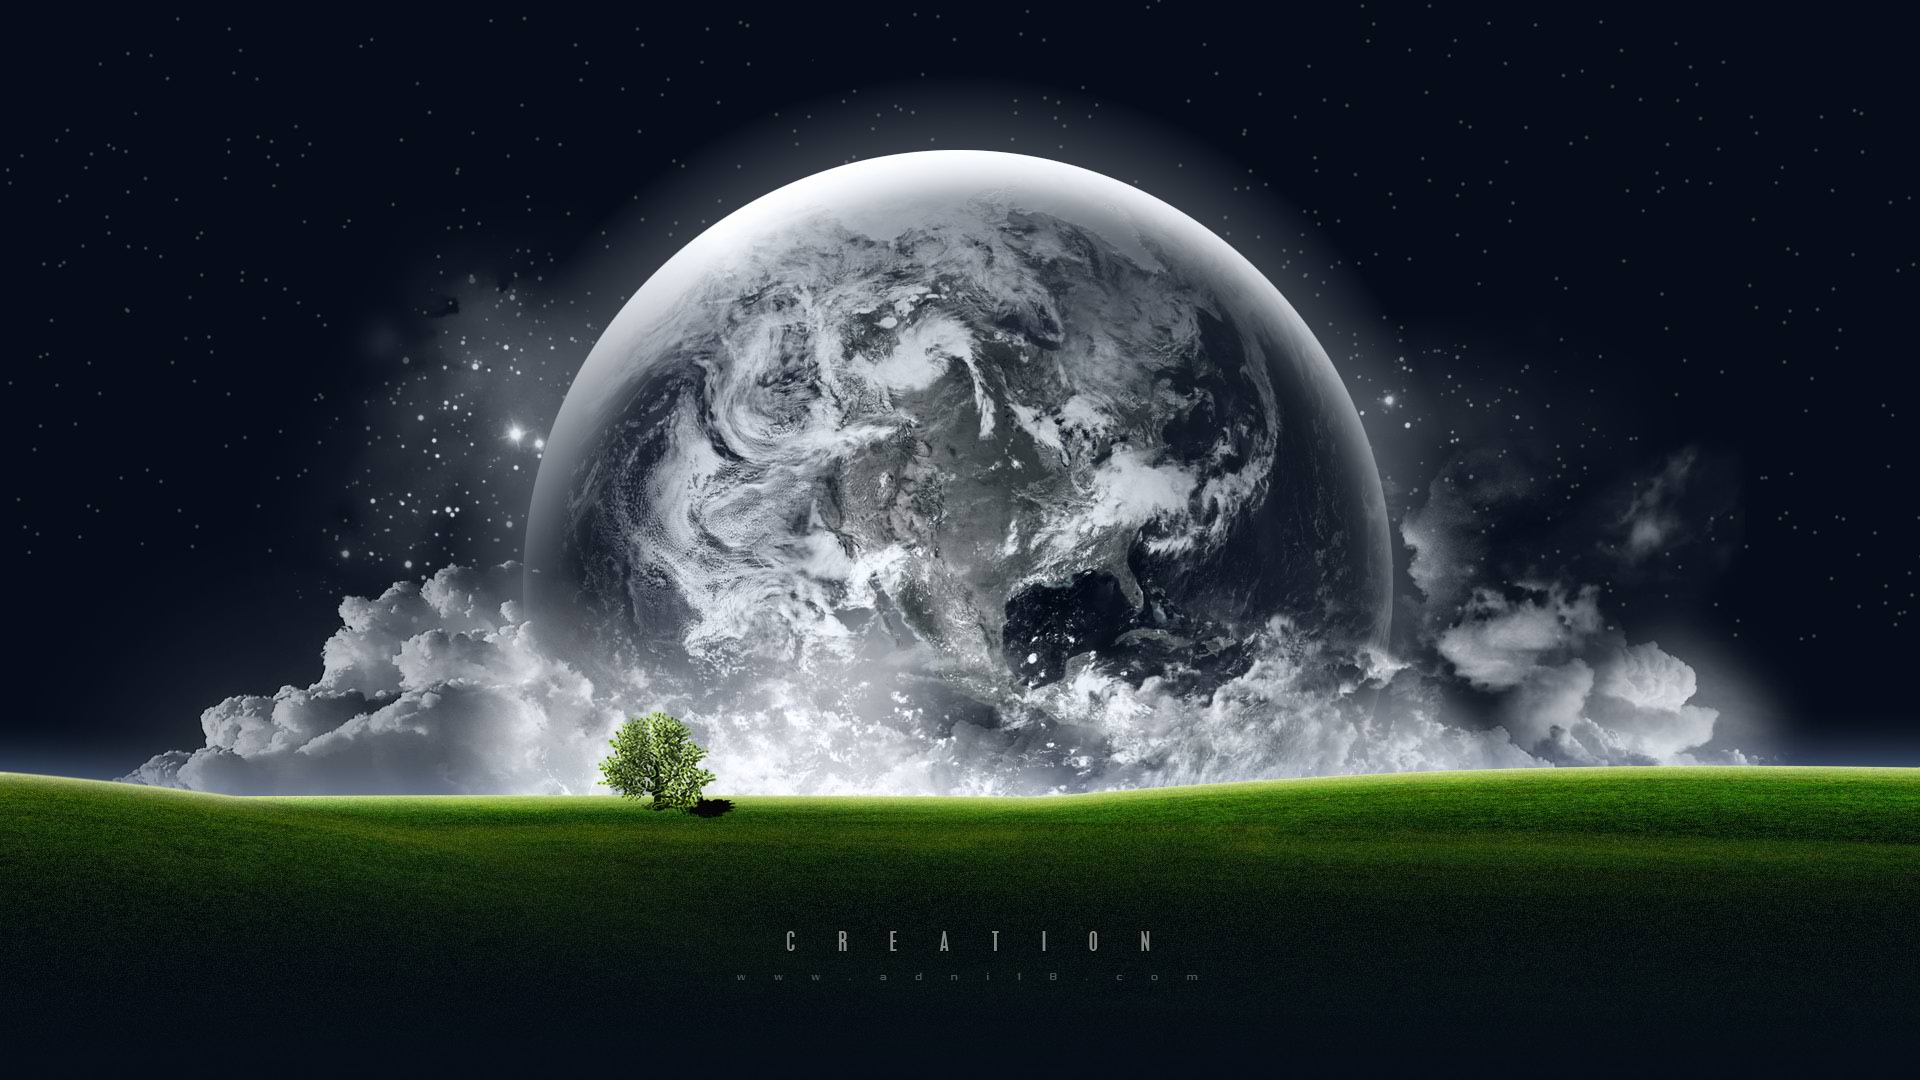 Creation HD Wallpaper Theme Bin   Customization HD Wallpapers 1920x1080